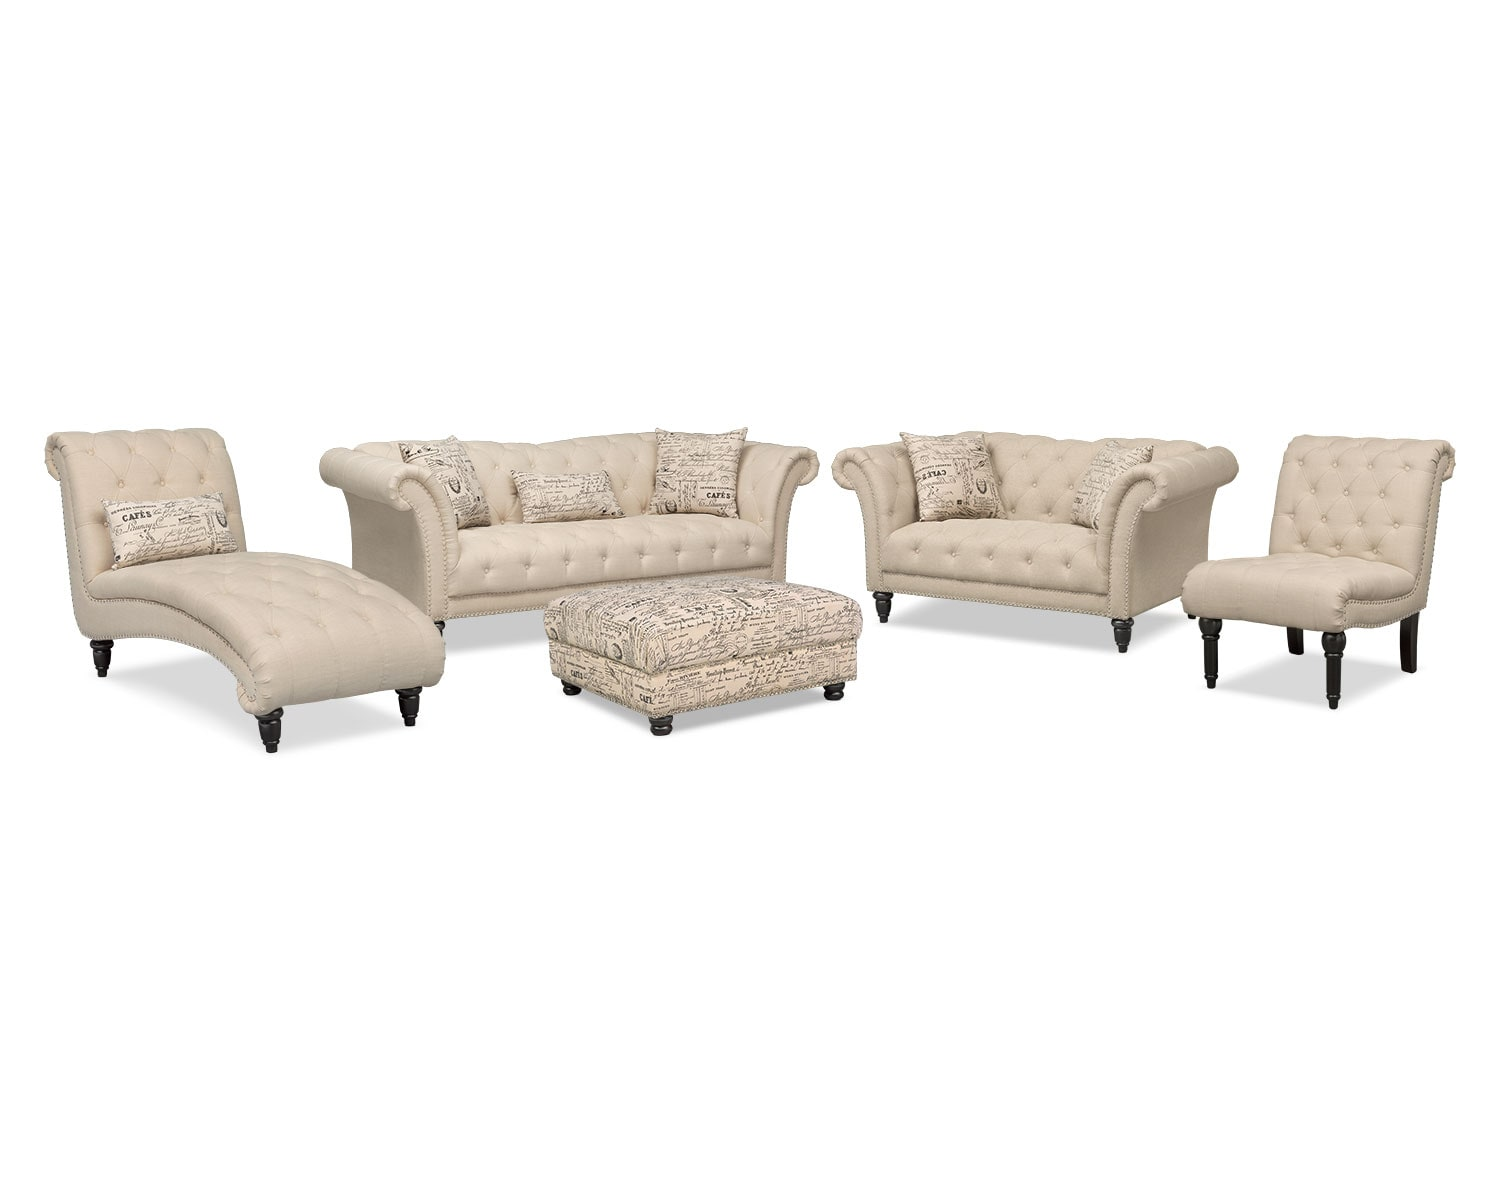 Brighton taupe 3 piece chaise and sofa set 3 piece sofas for Brighton taupe 3 piece chaise and sofa set